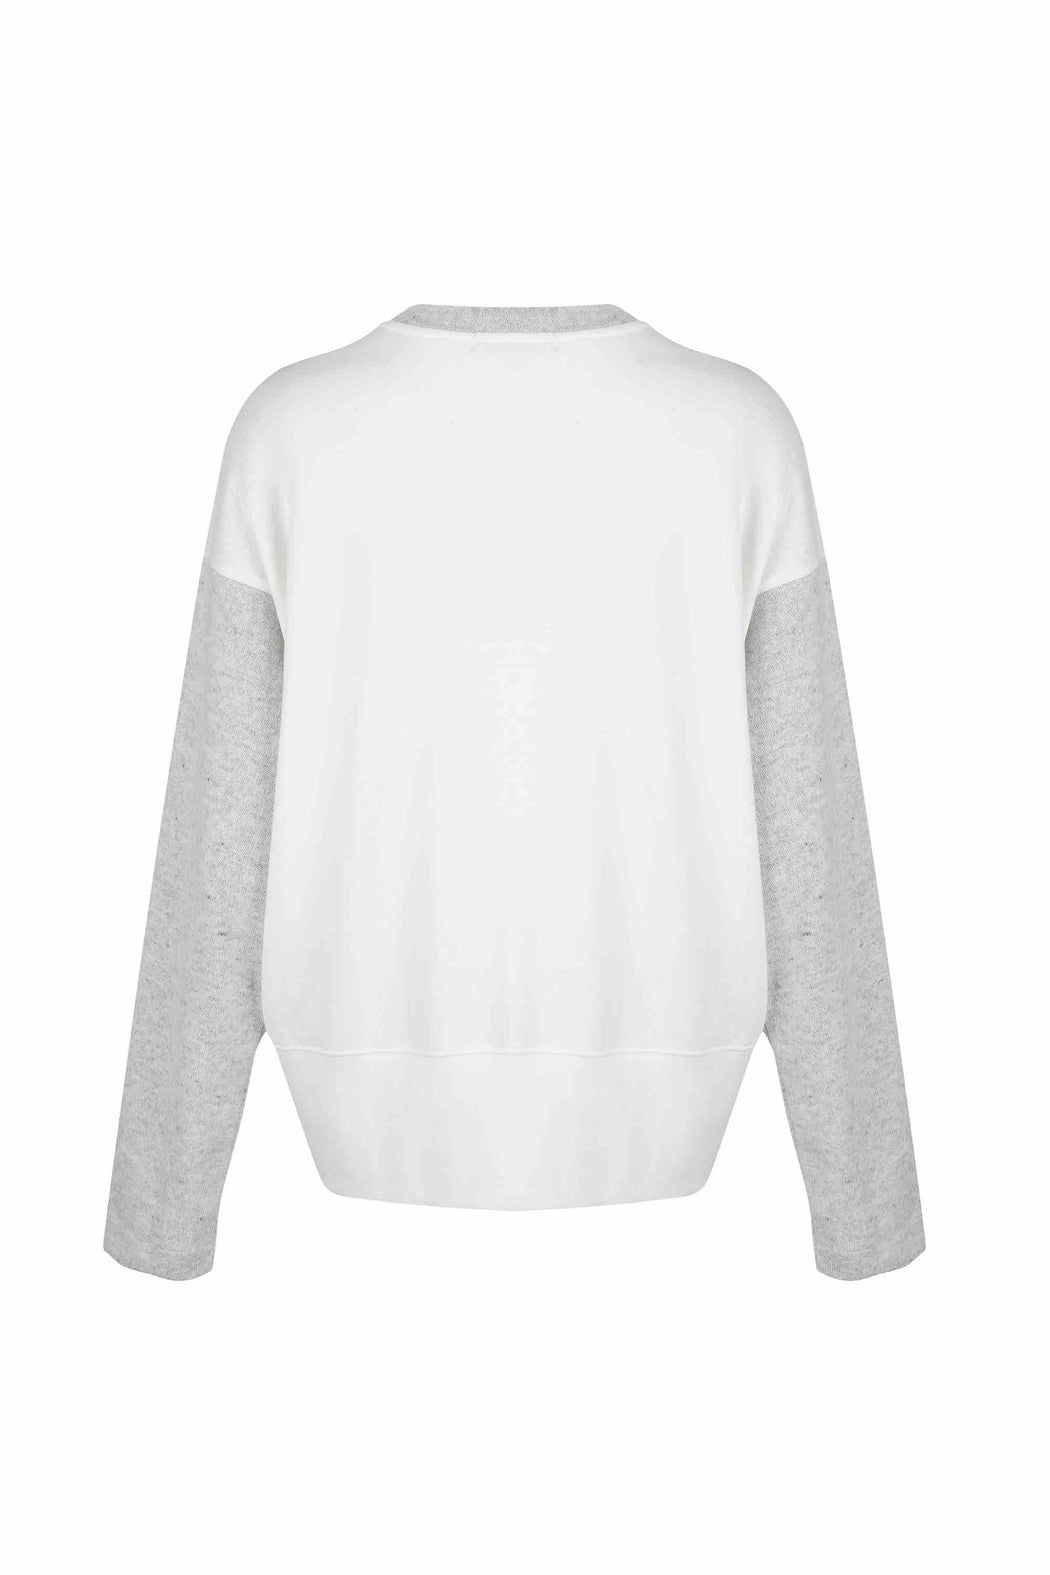 Back view of Women Fabric Block Sweater, made with Organic Cotton and wool blends in white/melange grey